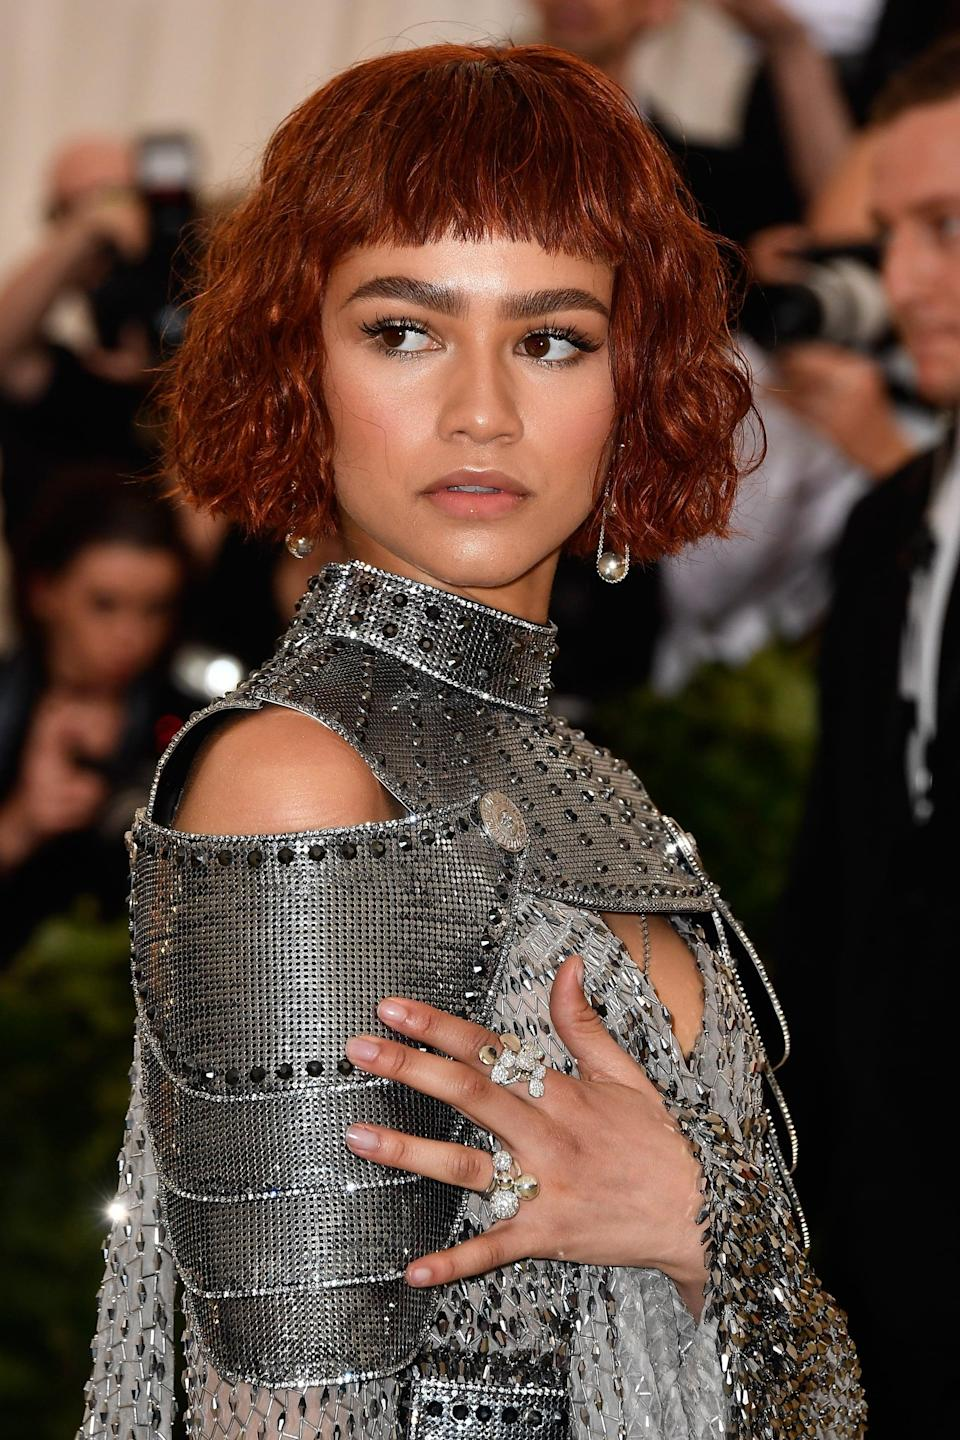 "<p><a href=""https://www.popsugar.com/fashion/Zendaya-Met-Gala-Dress-2018-44821237"" class=""link rapid-noclick-resp"" rel=""nofollow noopener"" target=""_blank"" data-ylk=""slk:Zendaya was almost unrecognizable at the 2018 Met Gala"">Zendaya was almost unrecognizable at the 2018 Met Gala</a> with her wavy Joan of Arc-inspired blunt red bob and short bangs. </p>"